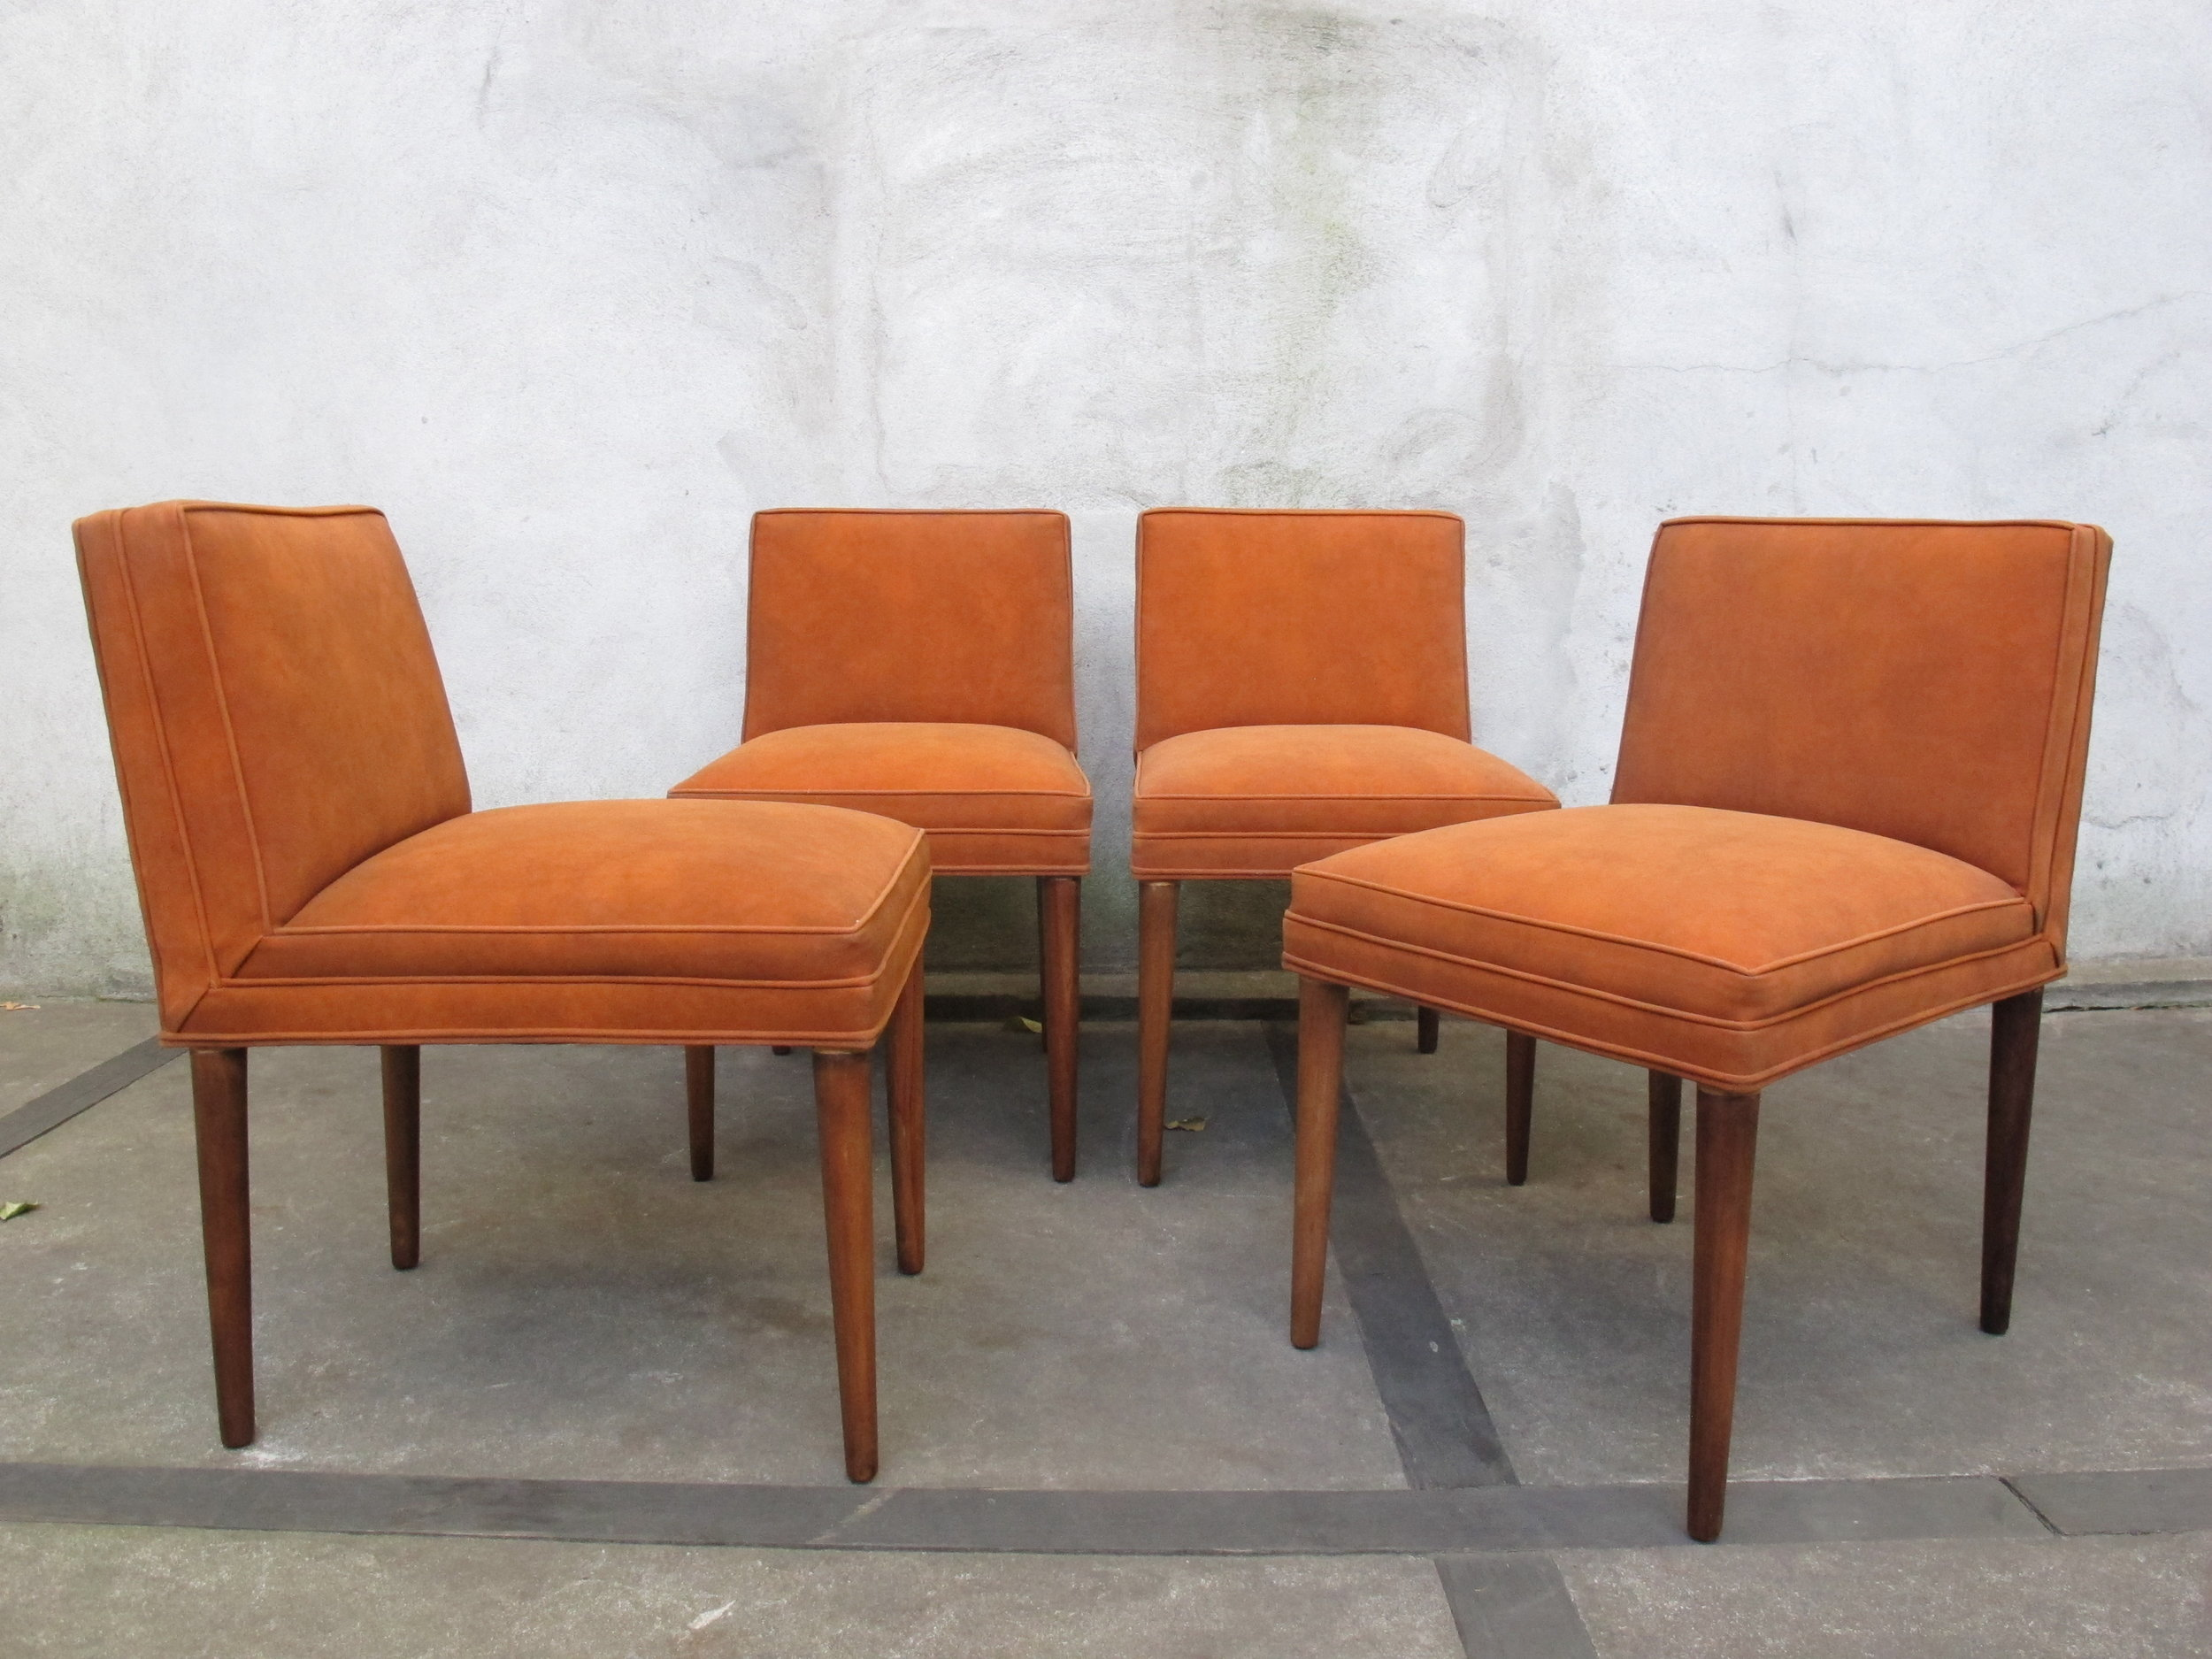 SET OF TOMMI PARZINGER RUST COLORED DINING CHAIRS